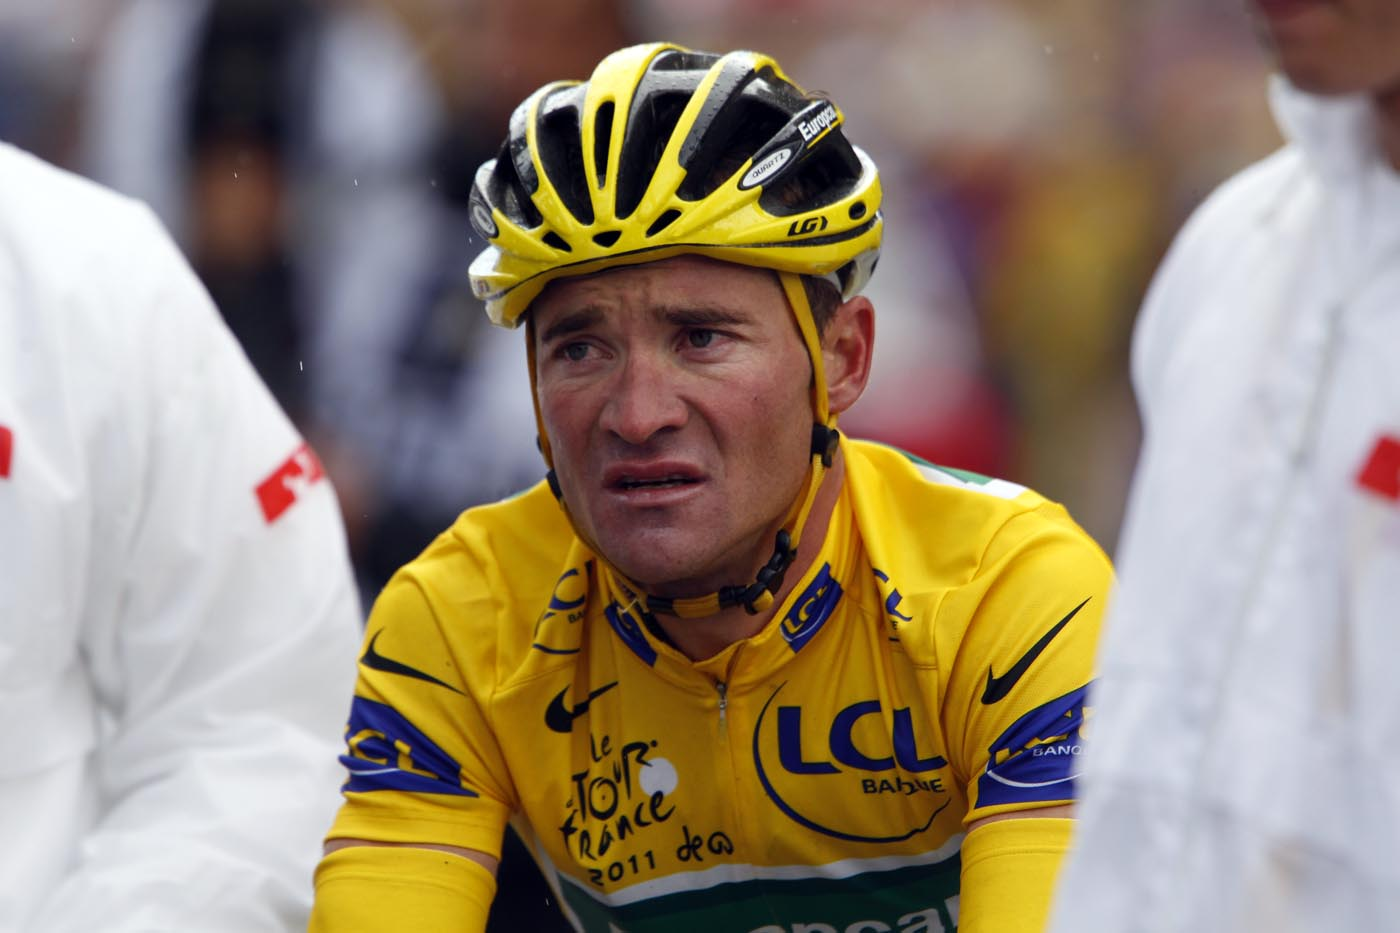 Thomas Voeckler at finish, Tour de France 2011, stage 16